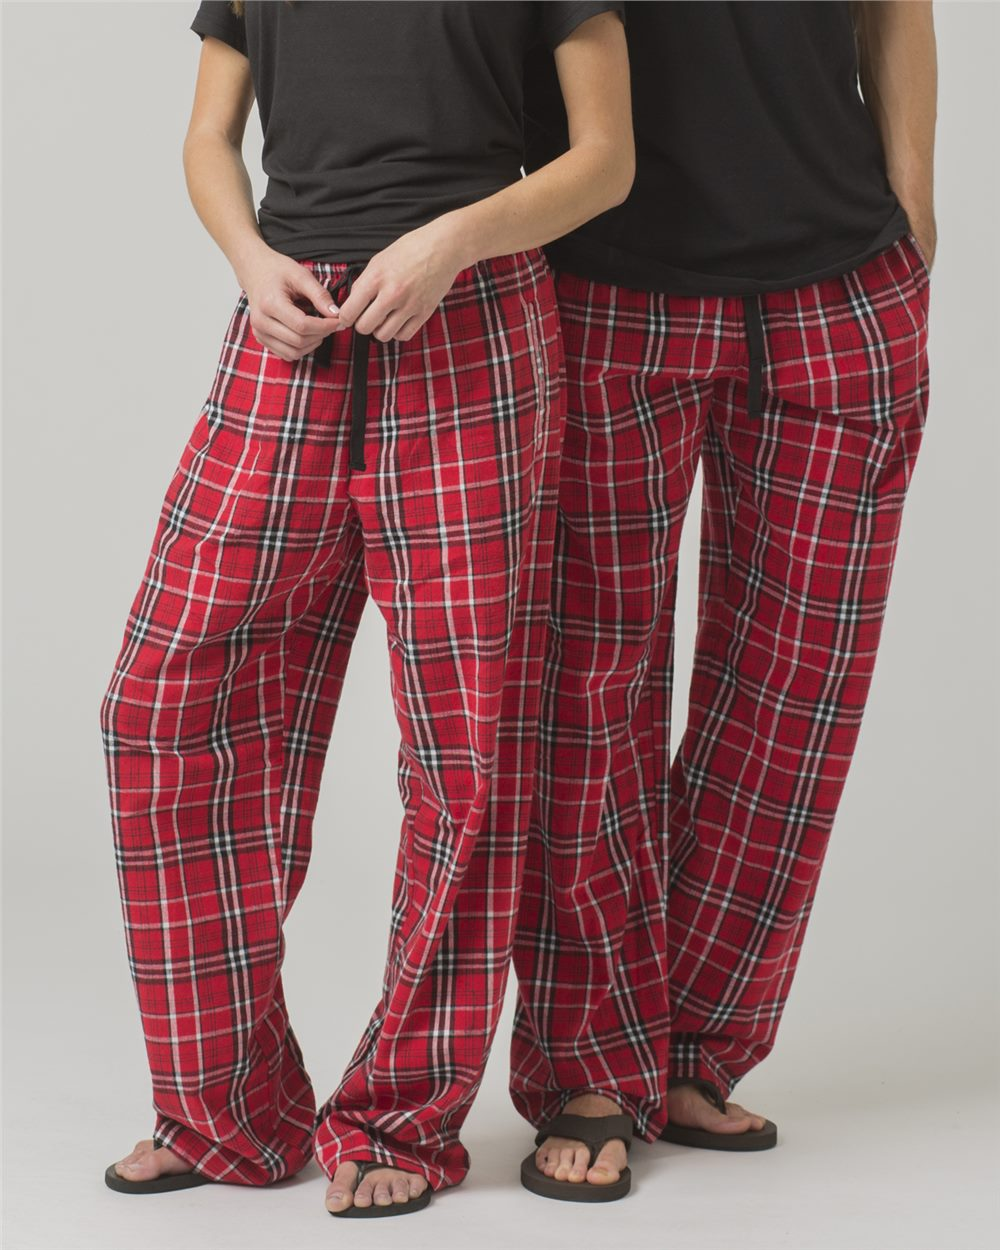 SMAC Youth Flannel Pants   Navy Stars